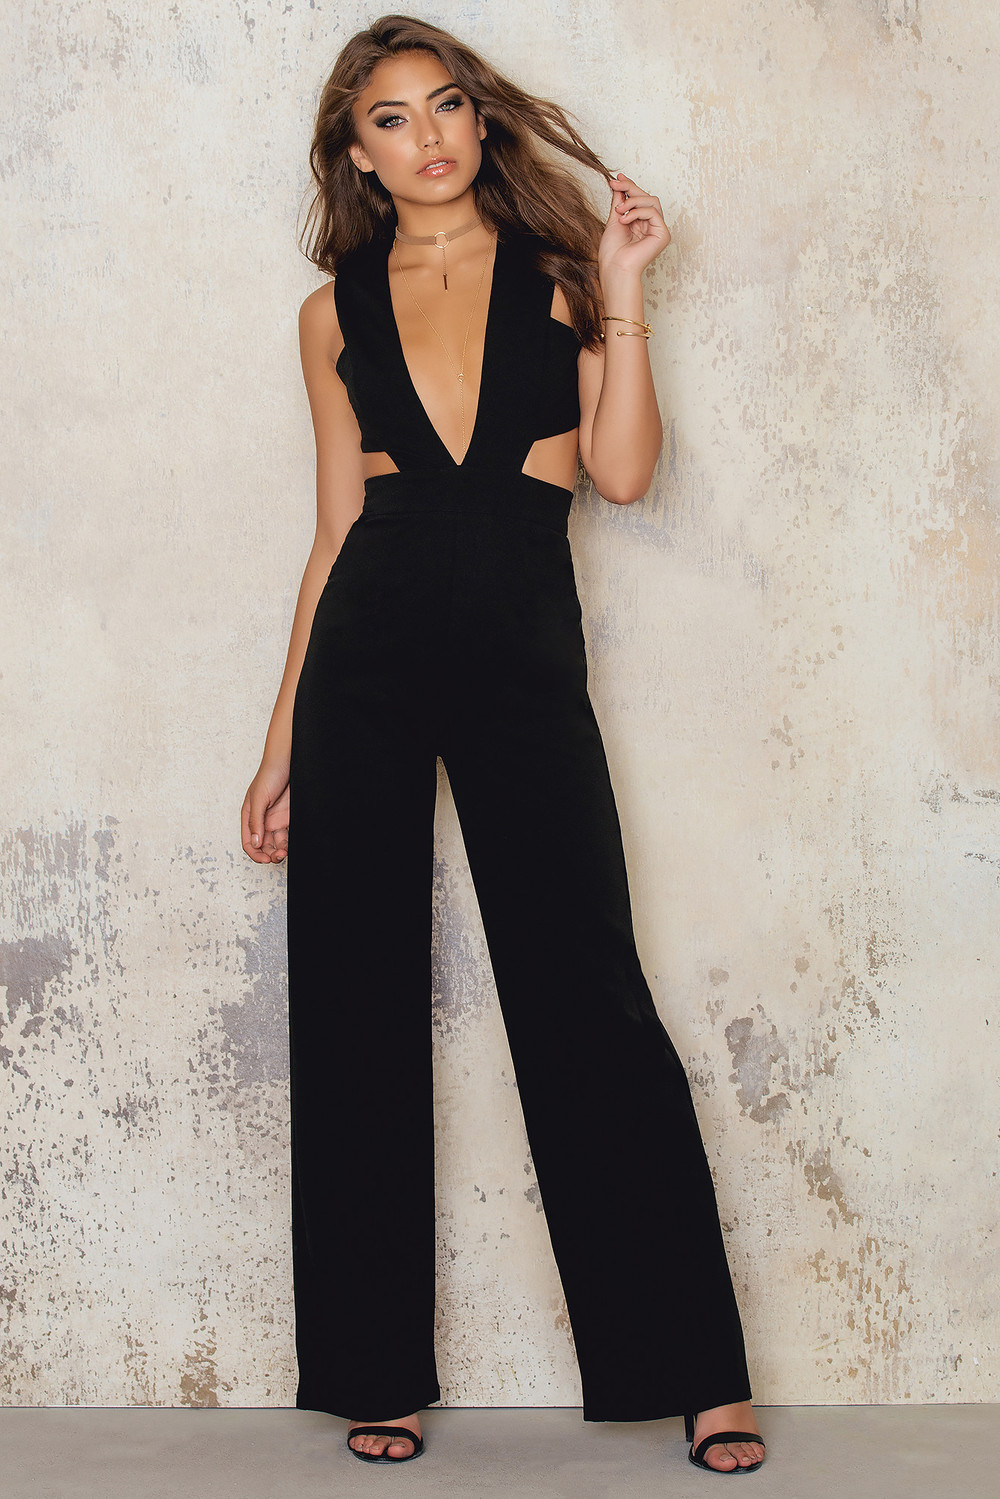 NaaNaa Extreme Plunge Wide Leg Jumpsuit Cut Out Waist